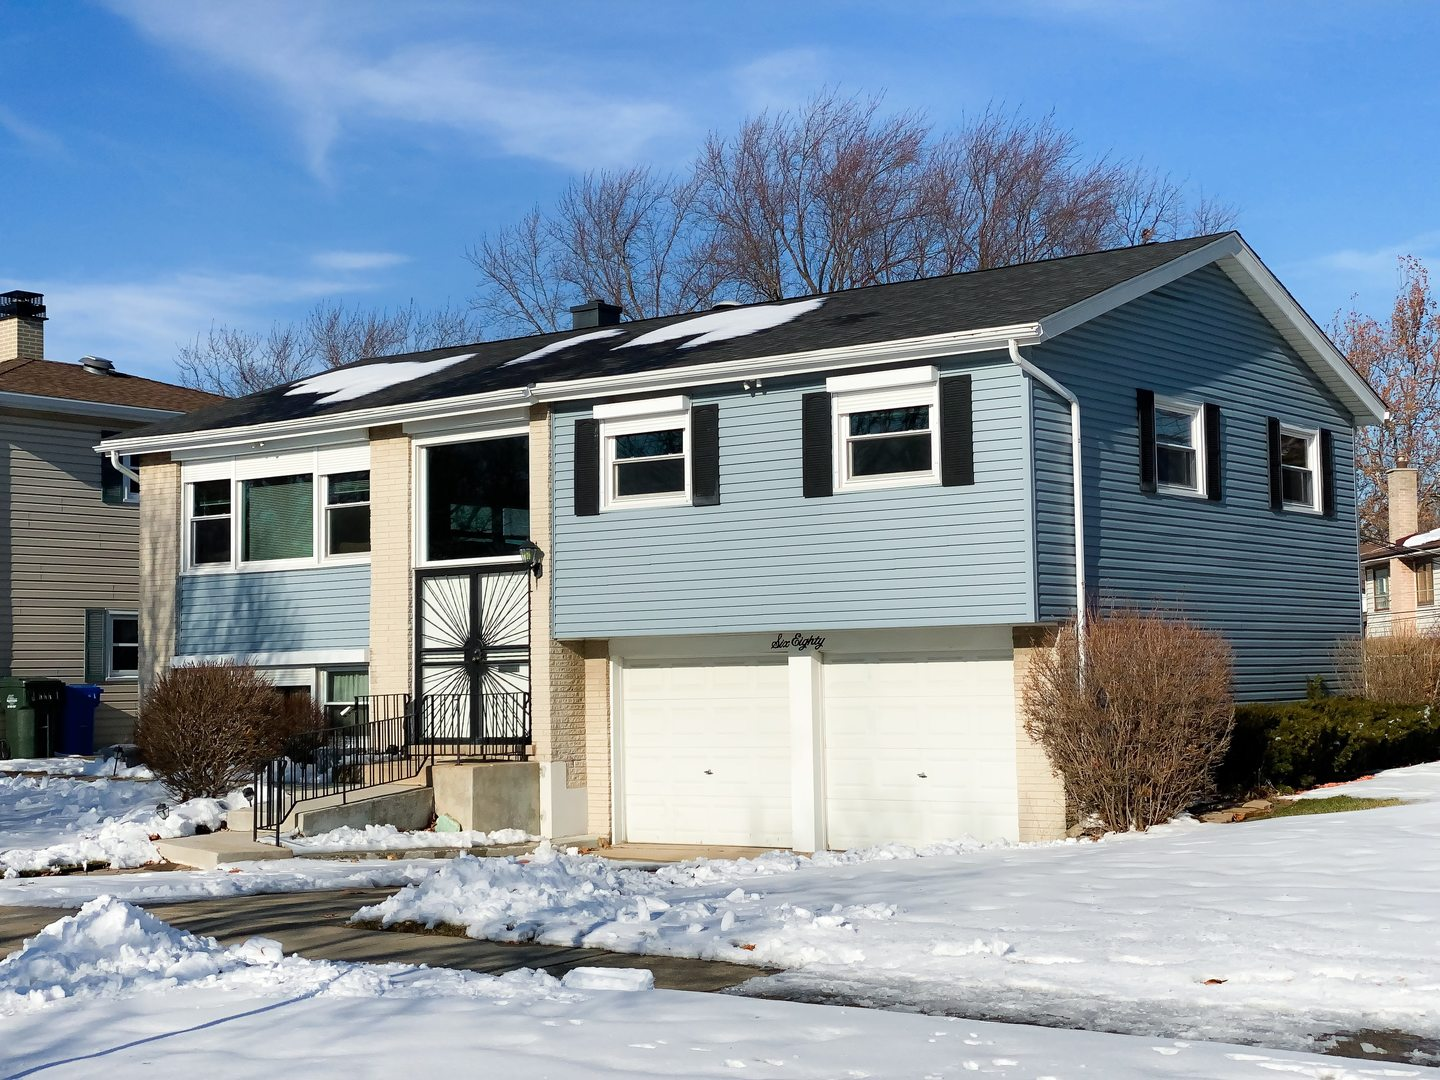 680 Waikiki Drive, Des Plaines in Cook County, IL 60016 Home for Sale